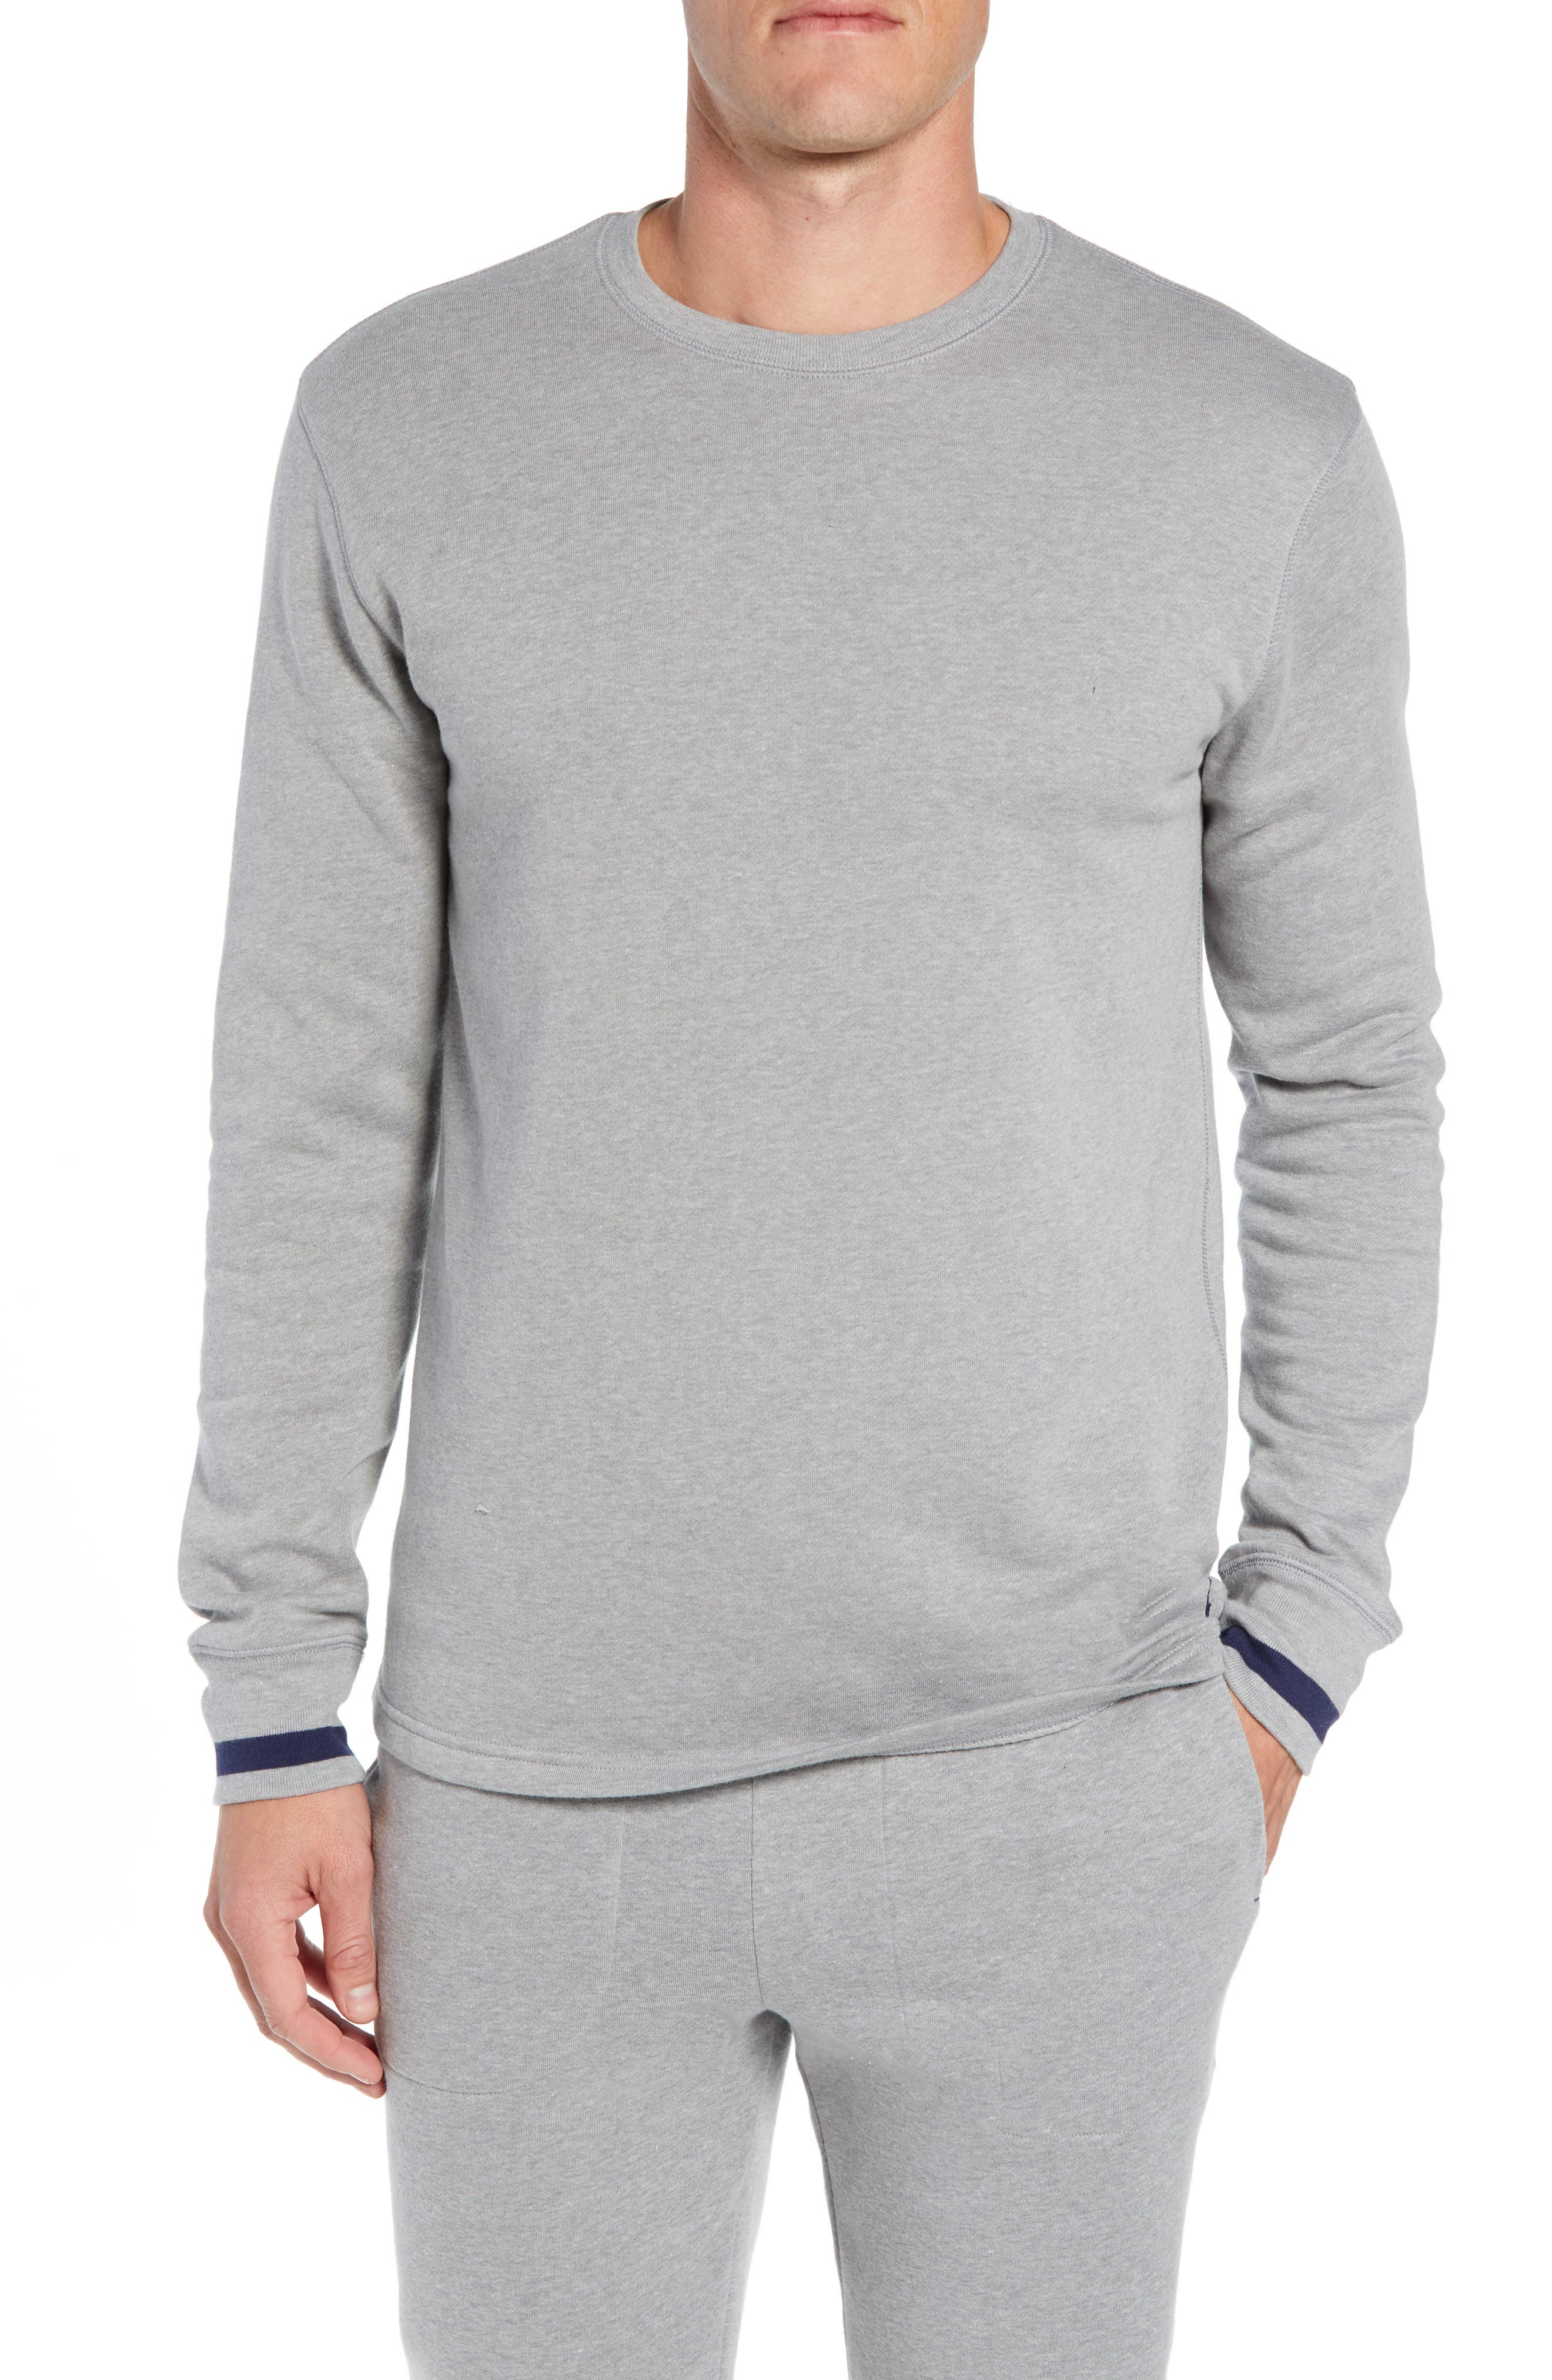 Brushed Jersey Cotton Blend Crewneck Sweatshirt,                             Main thumbnail 1, color,                             ANDOVER HEATHER GREY